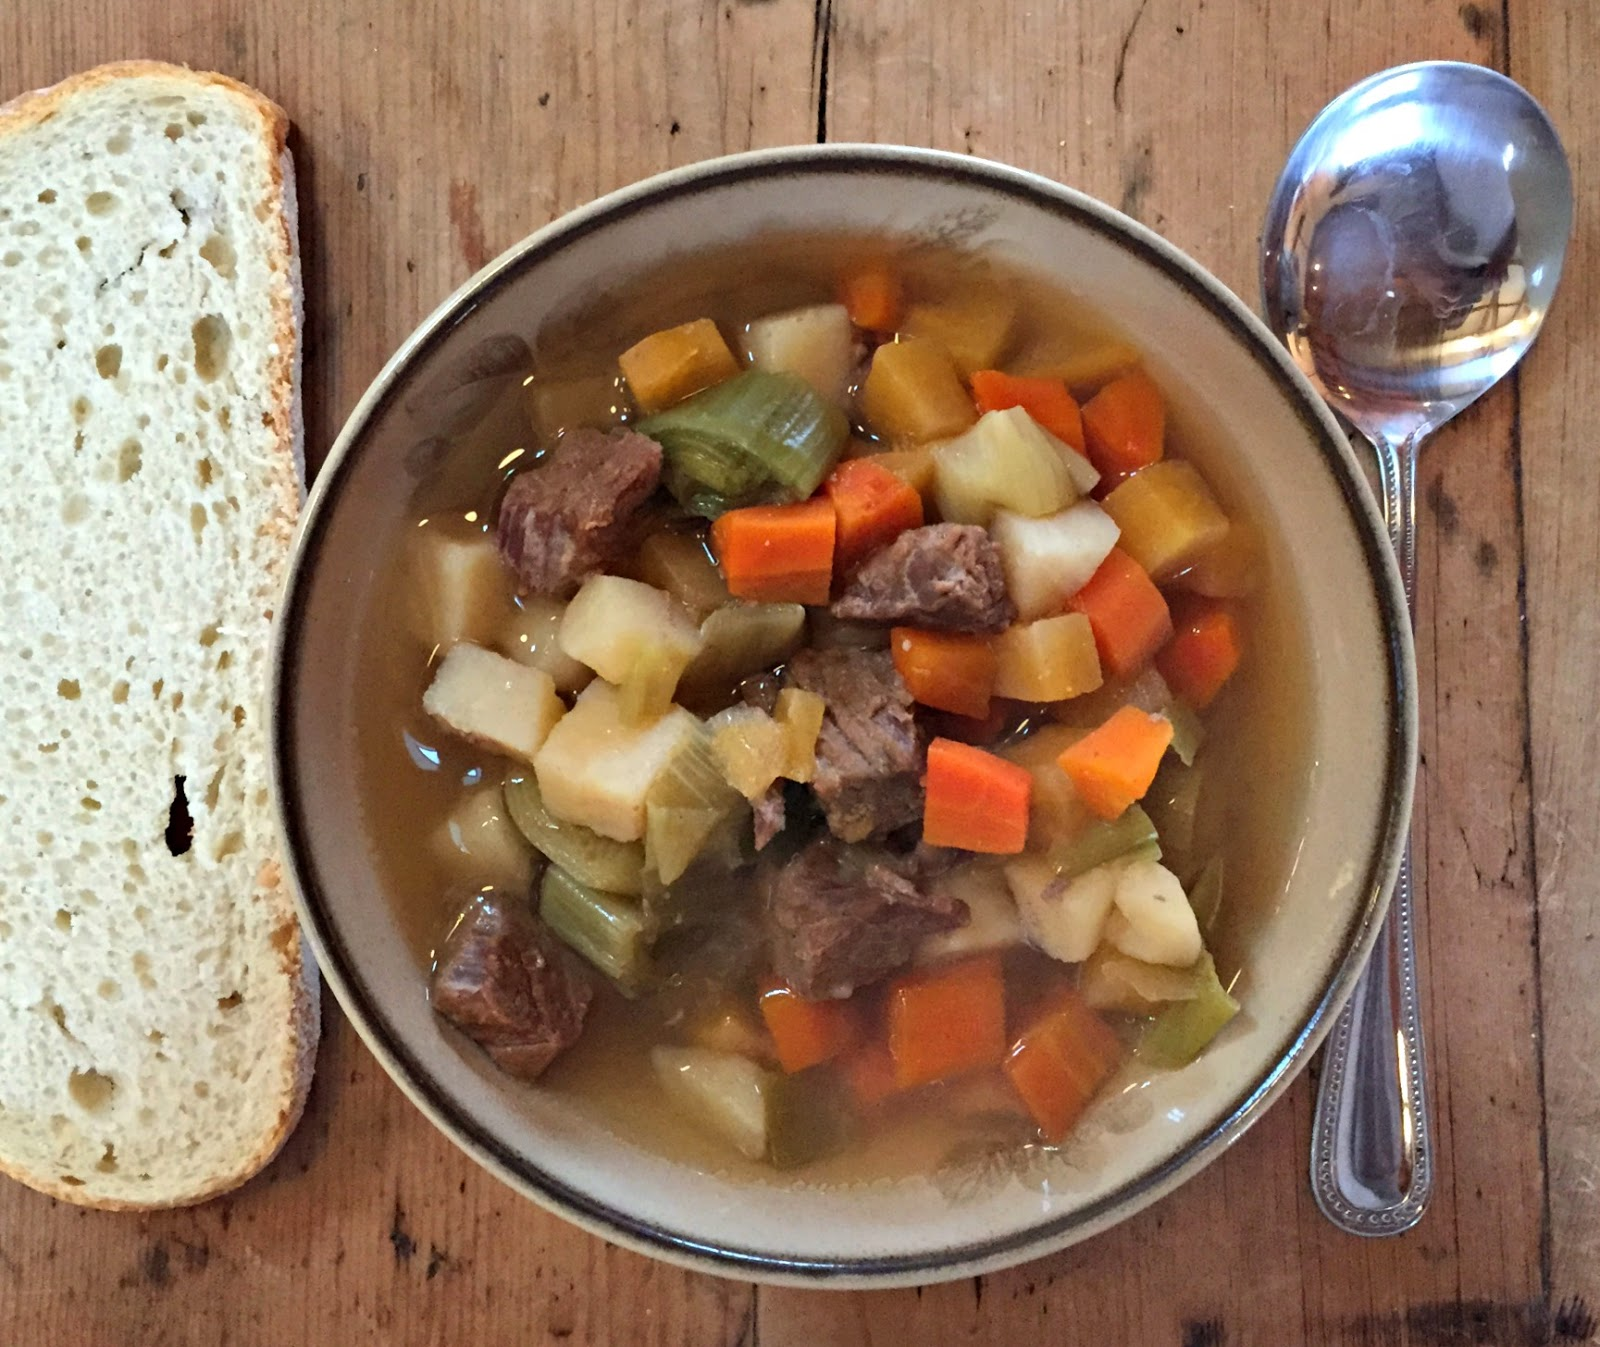 Bowl of Irish stew and bread